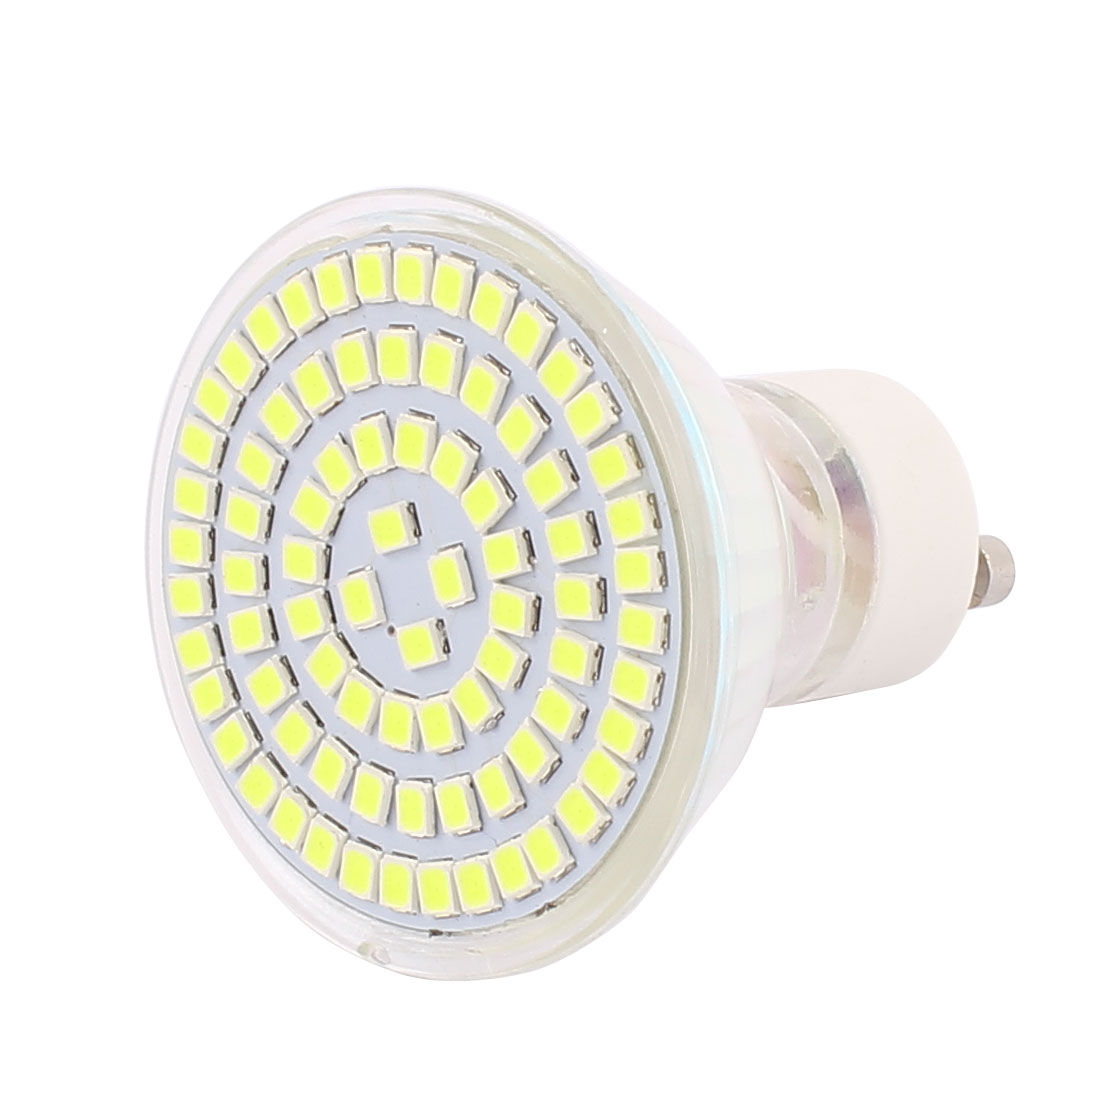 110V GU10 LED Light 8W 2835 SMD 80 LEDs Spotlight Down Lamp Bulb Lighting Pure White